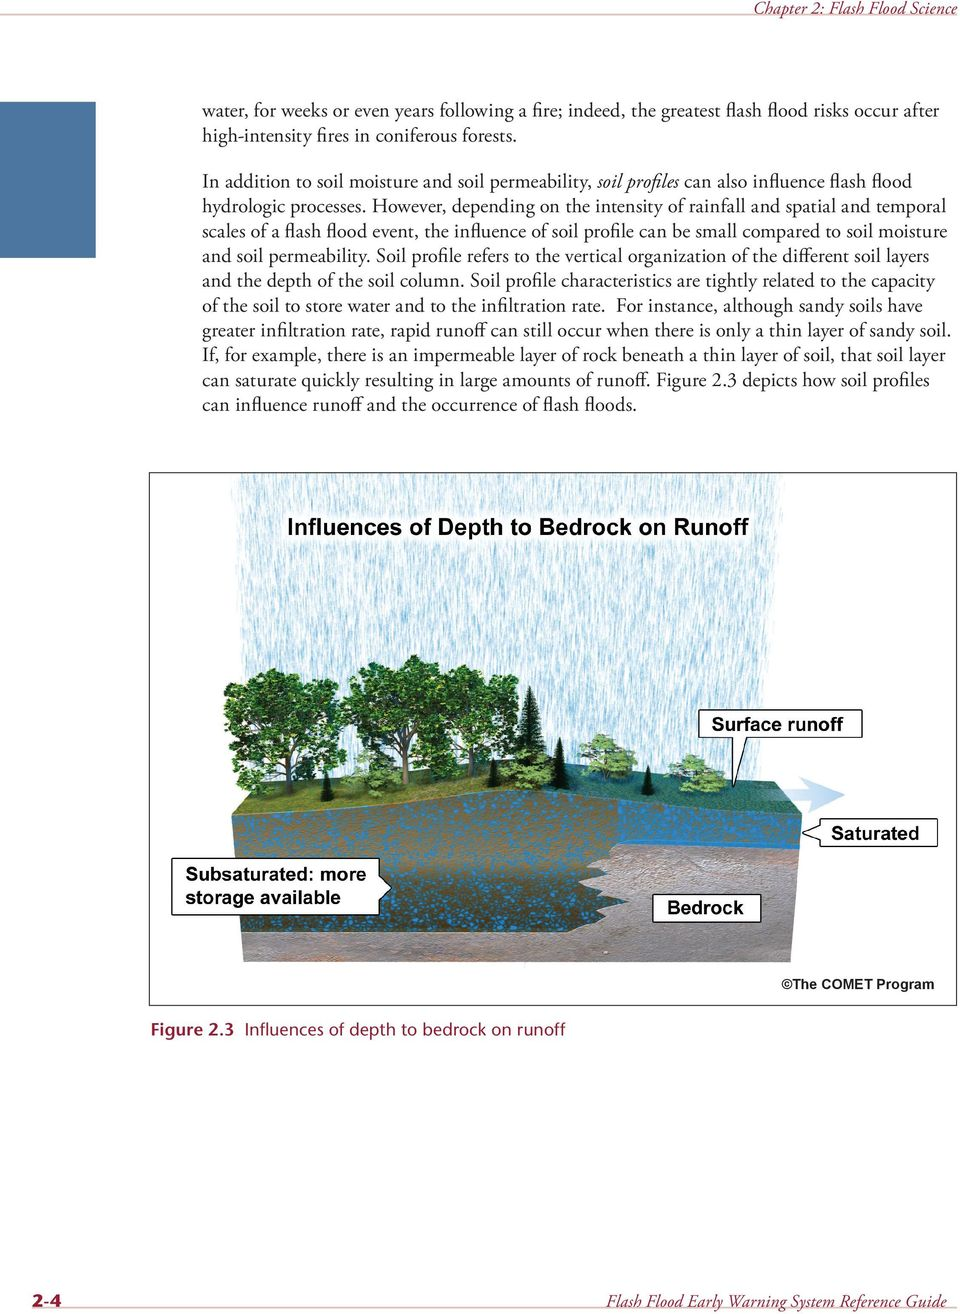 However, depending on the intensity of rainfall and spatial and temporal scales of a flash flood event, the influence of soil profile can be small compared to soil moisture and soil permeability.